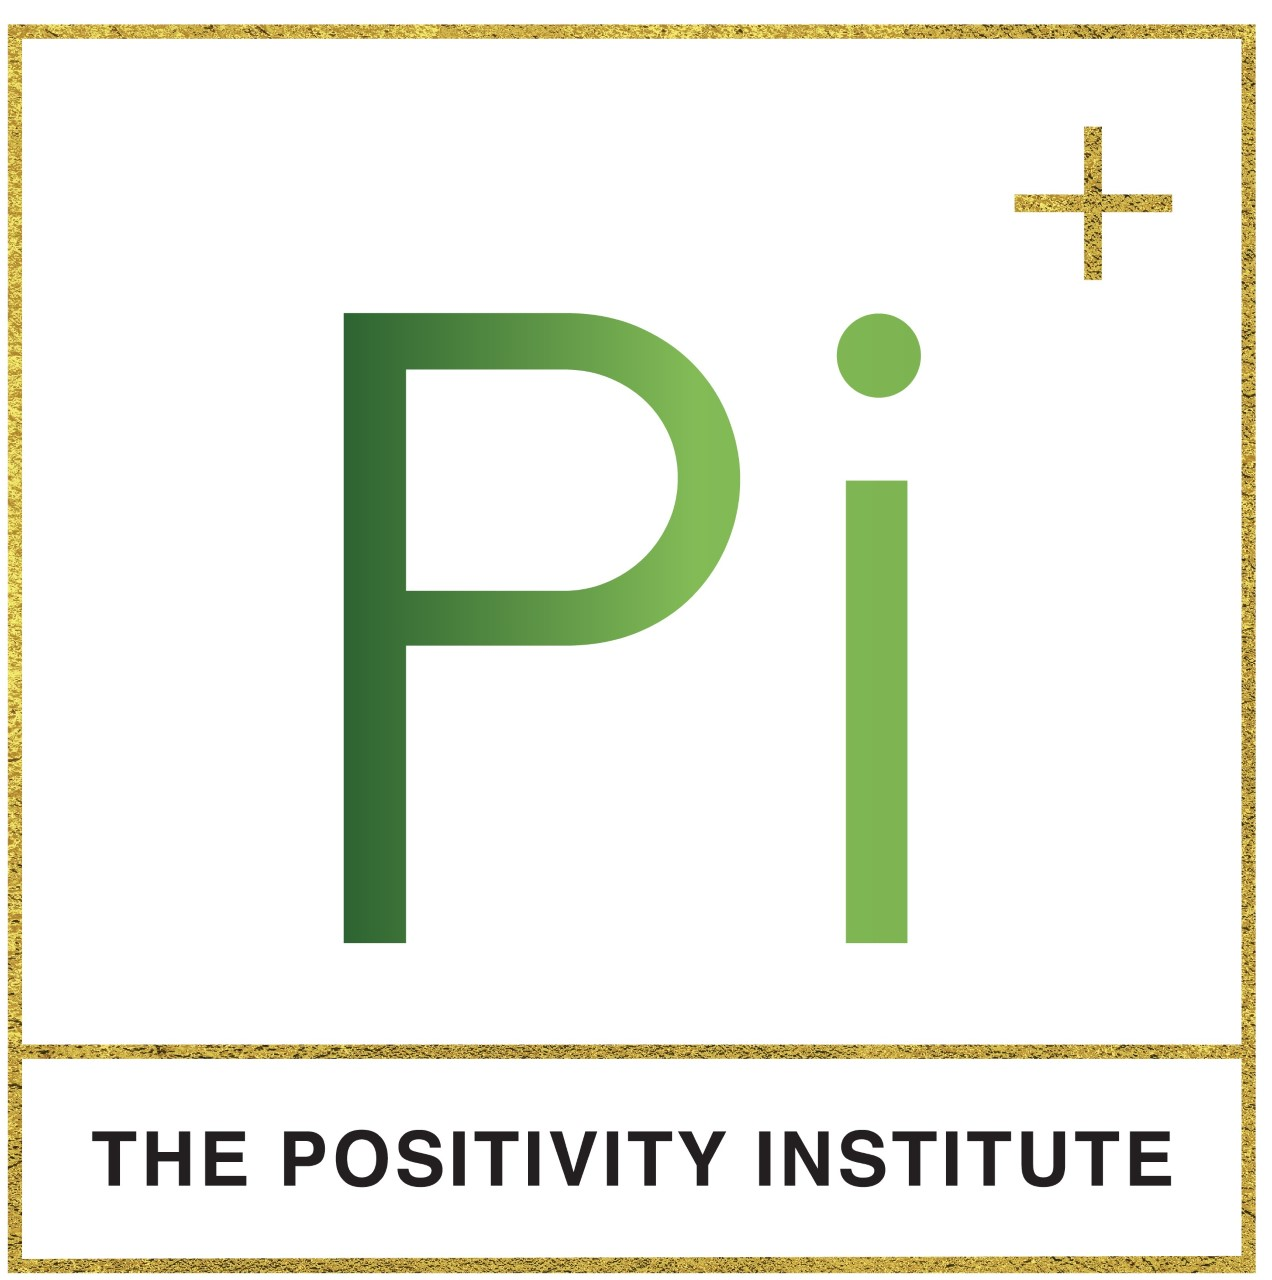 The Positivity Institute